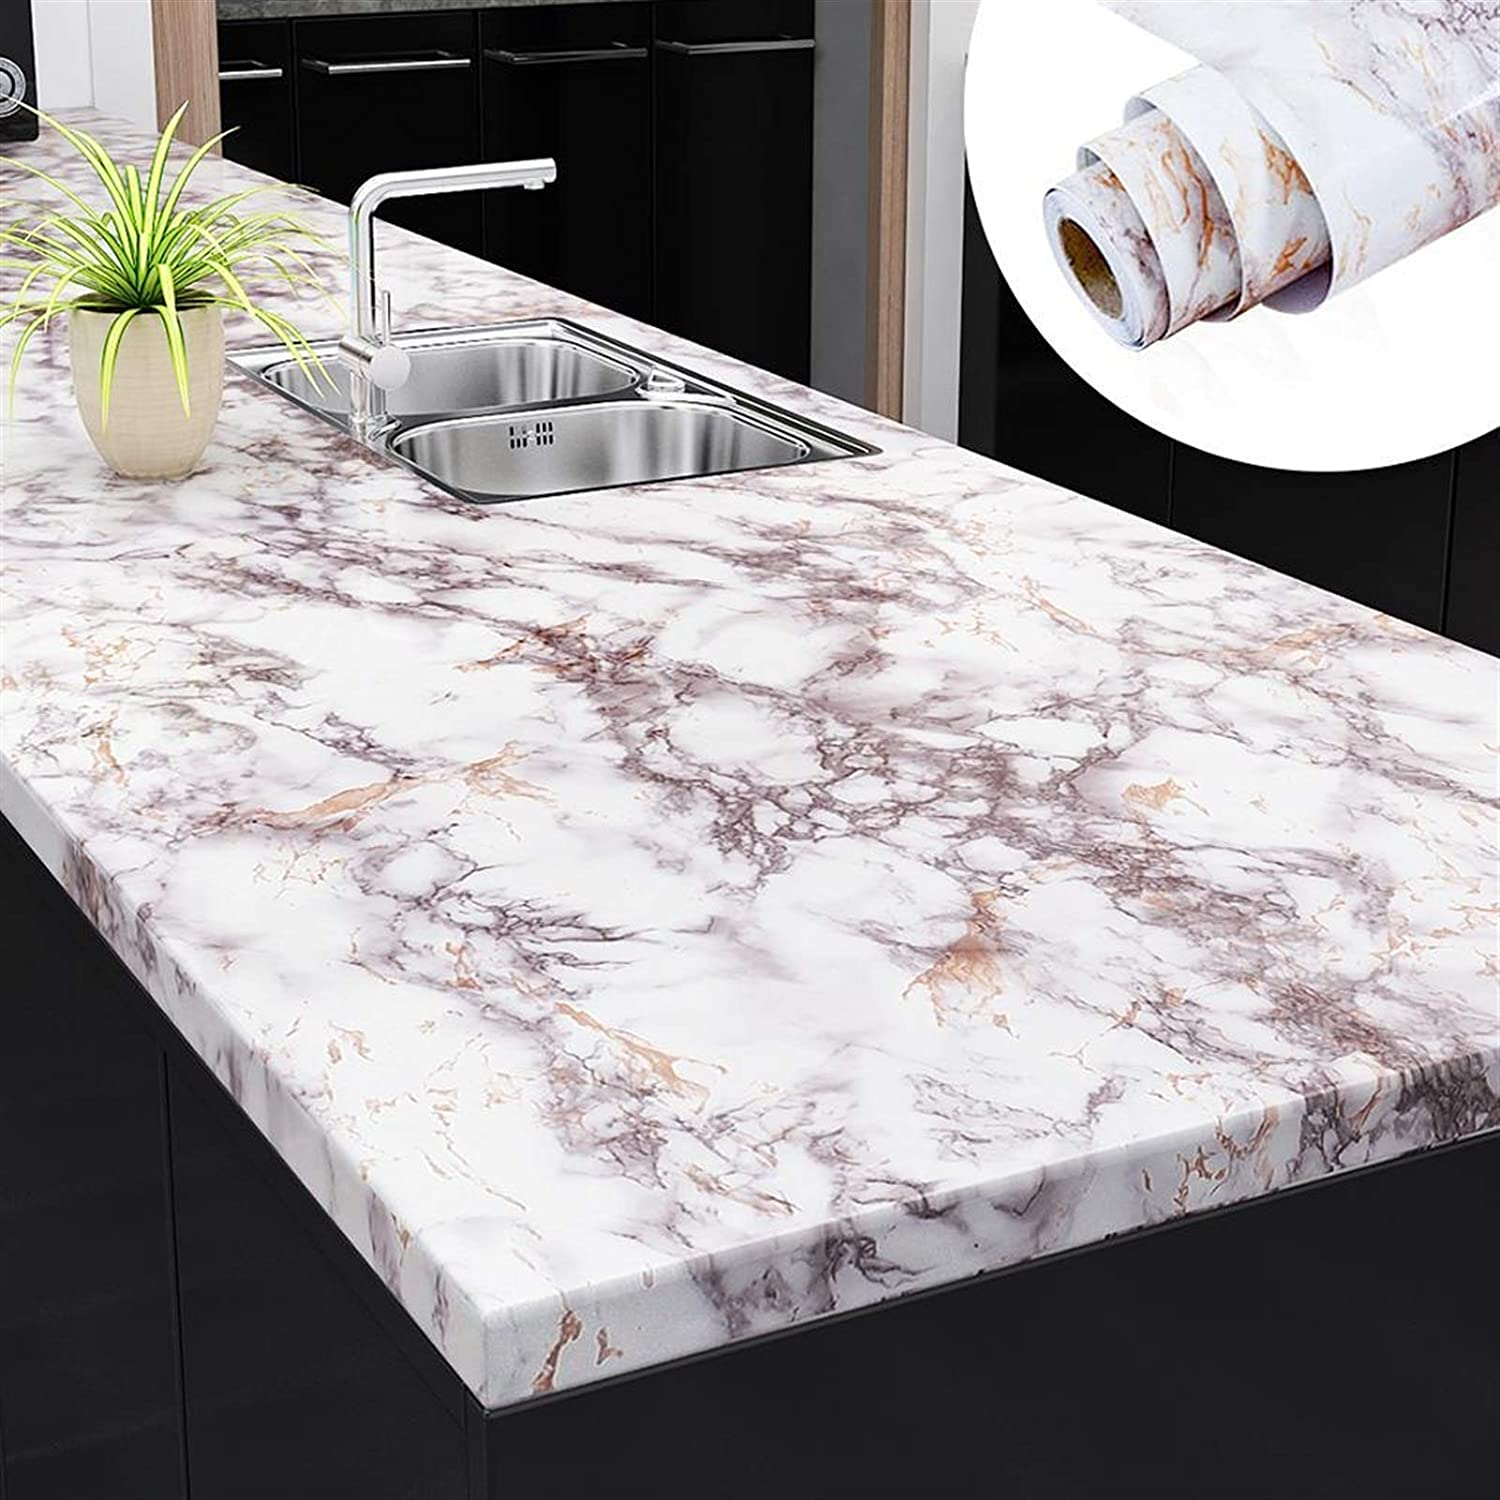 kengbi Frame is free shipping Easy to Installclean Mail order cheap Fashion Durabl Dec Home and